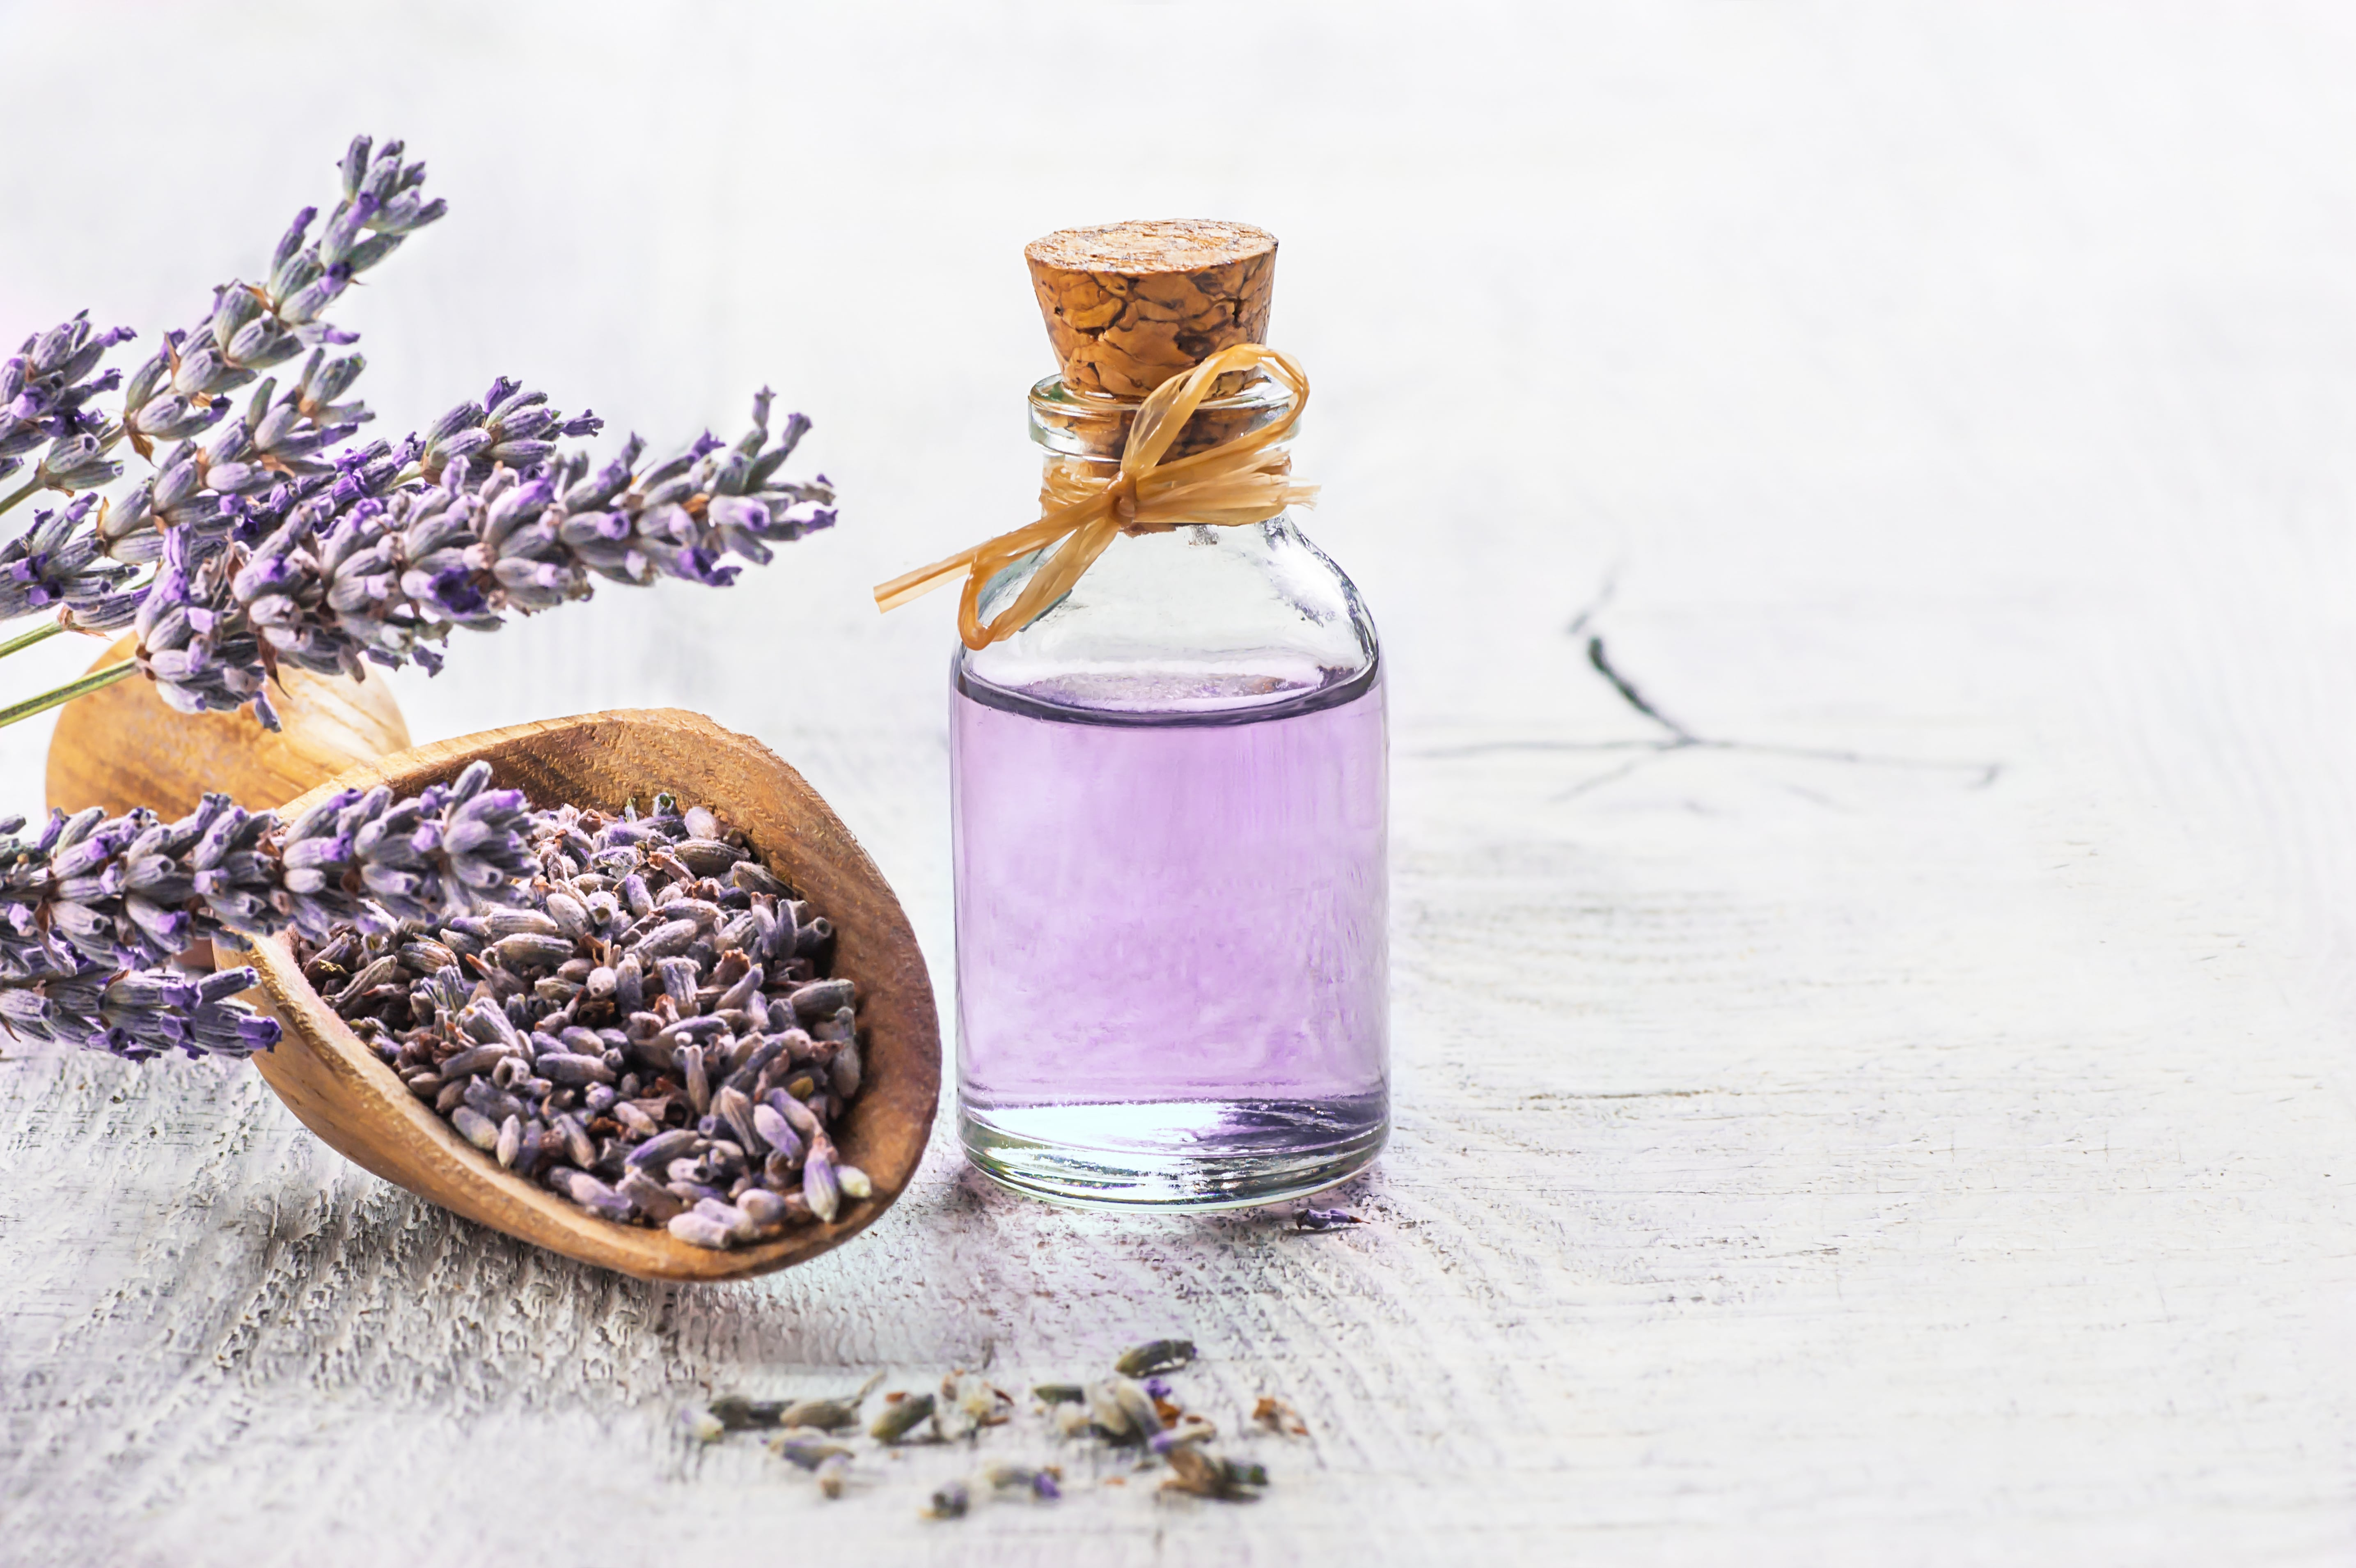 11 Incredible Benefits of Lavender Essential Oil